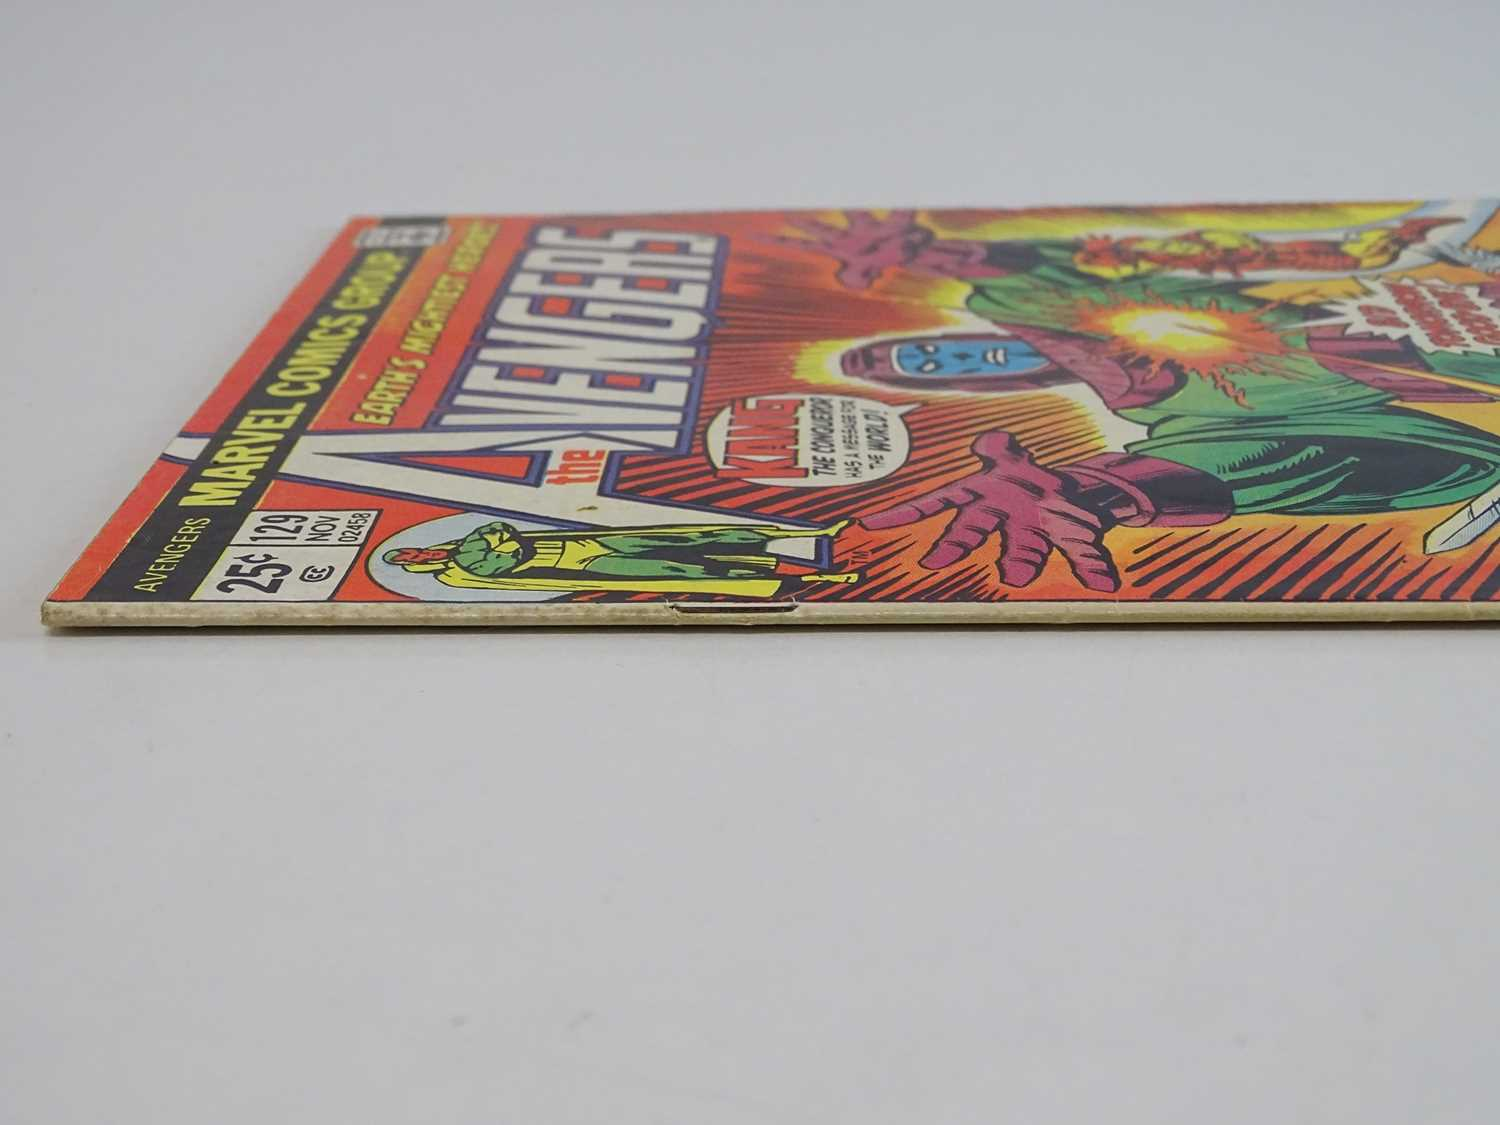 AVENGERS #129 - (1974 - MARVEL) - Classic Kang Cover + Kang the Conqueror, Ram-Tut appearances - Ron - Image 8 of 9